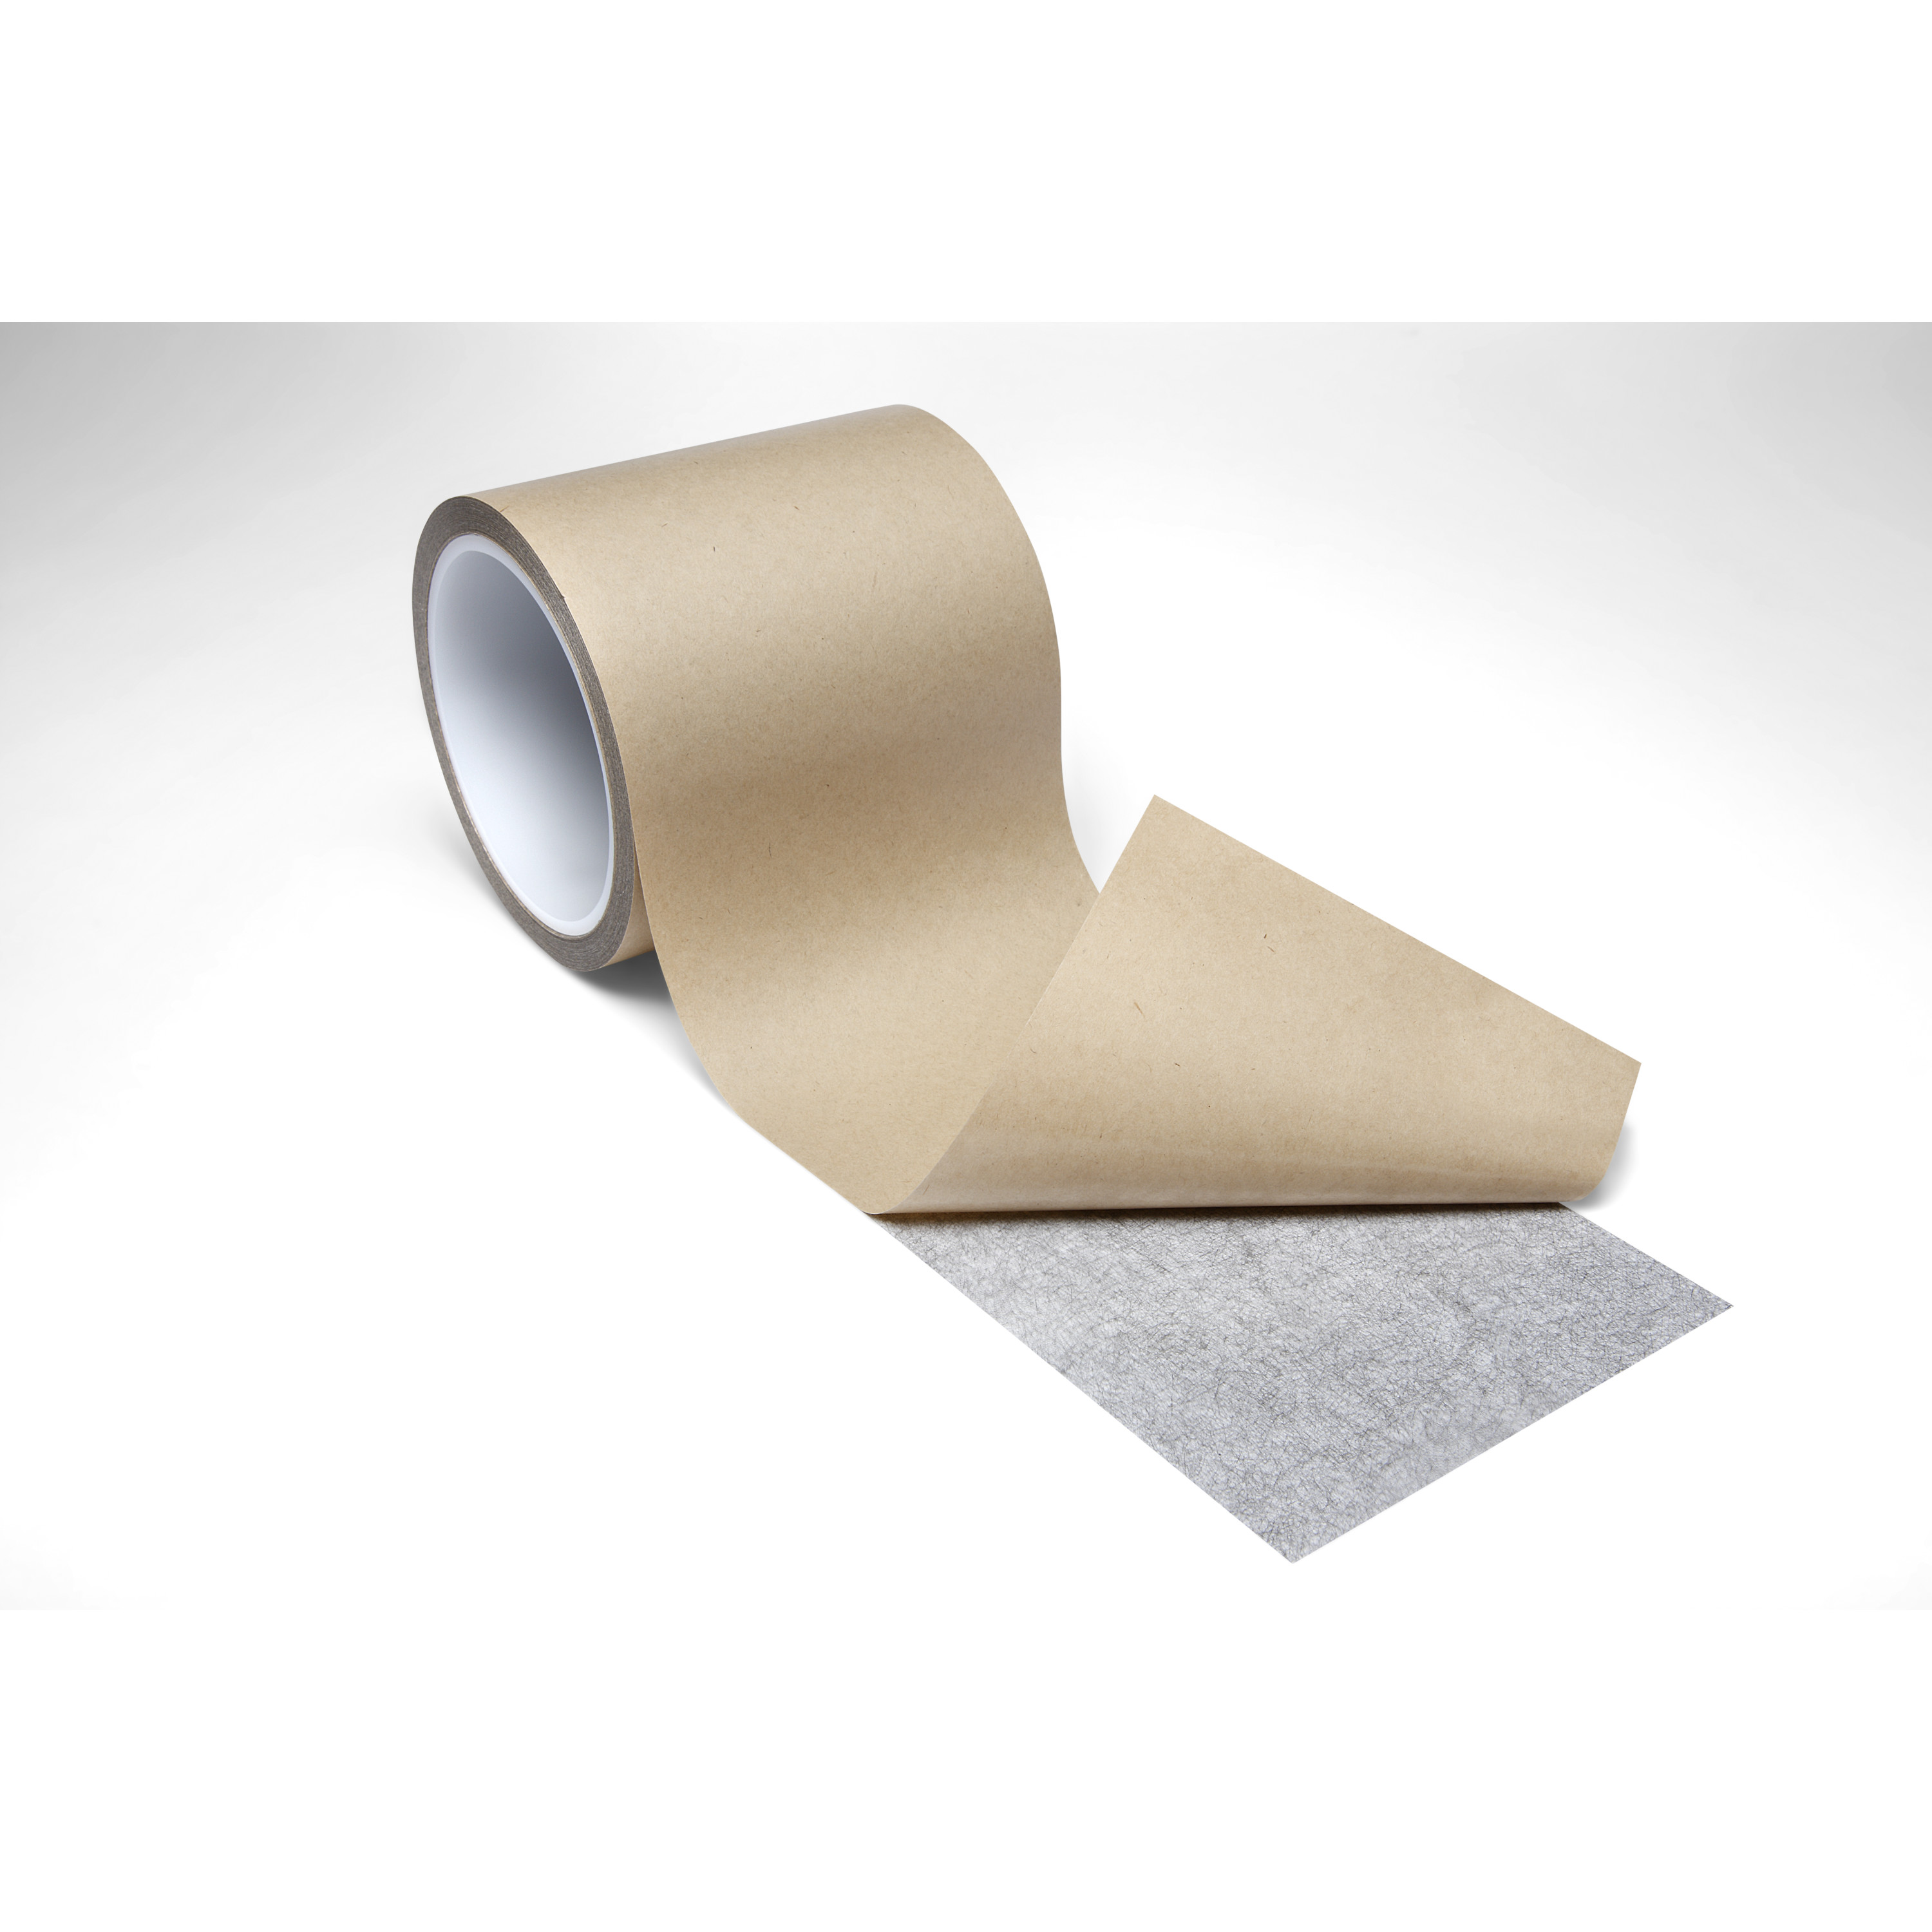 3M™ Electrically Conductive Adhesive Transfer Tape 9713, Configurable